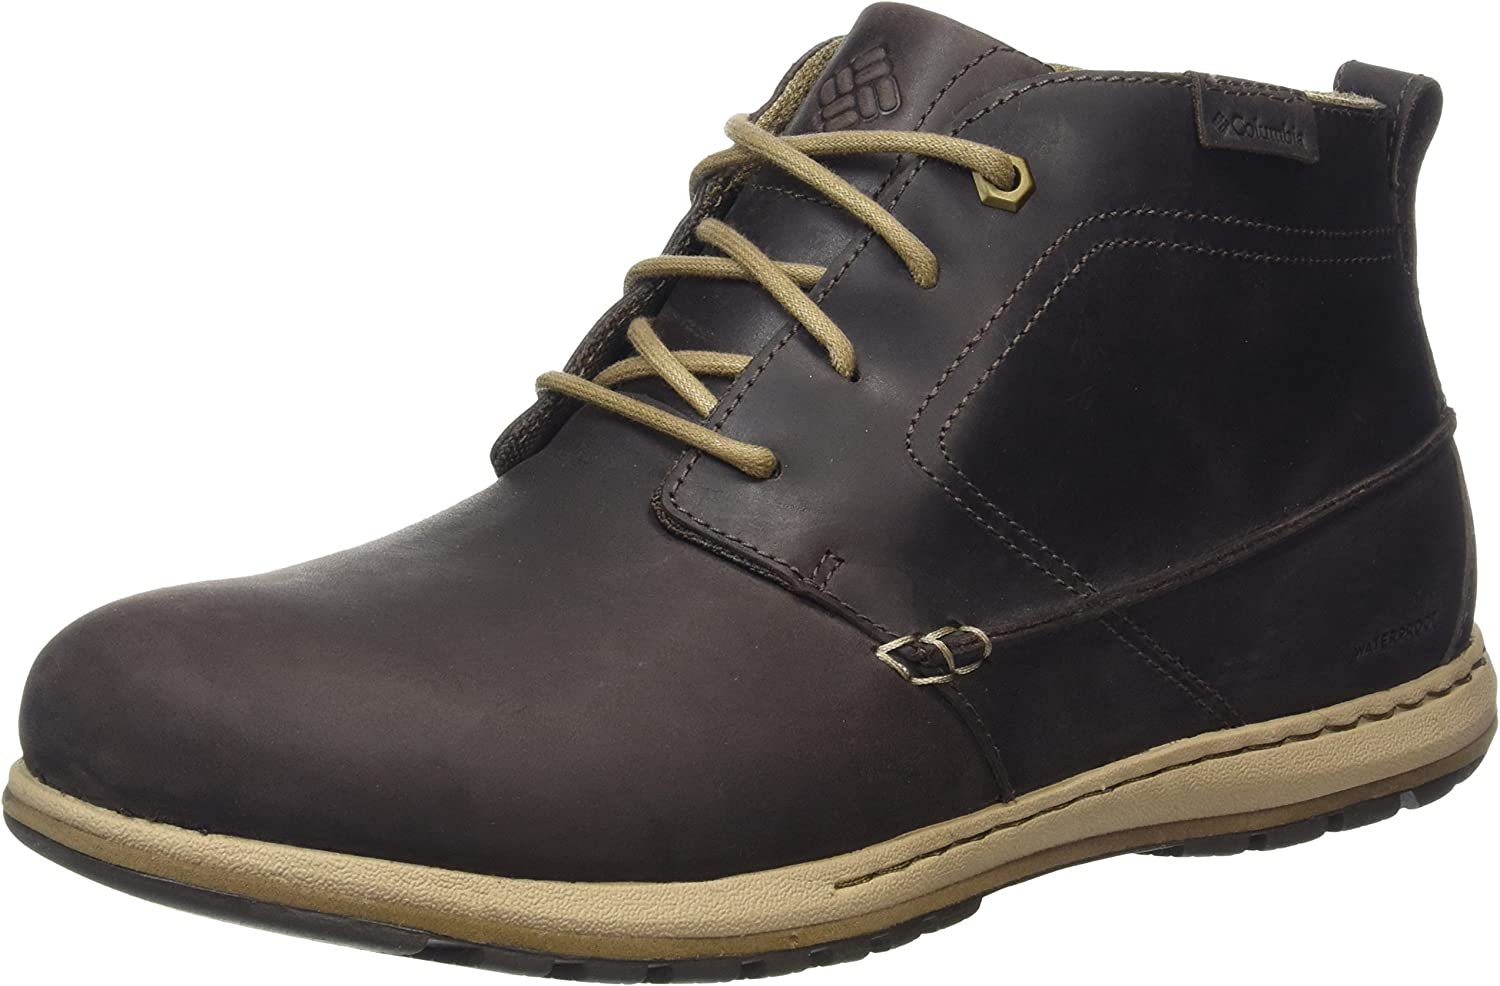 TALLA 48 EU. Columbia Davenport Chukka Waterproof Leather, Oxford para Hombre